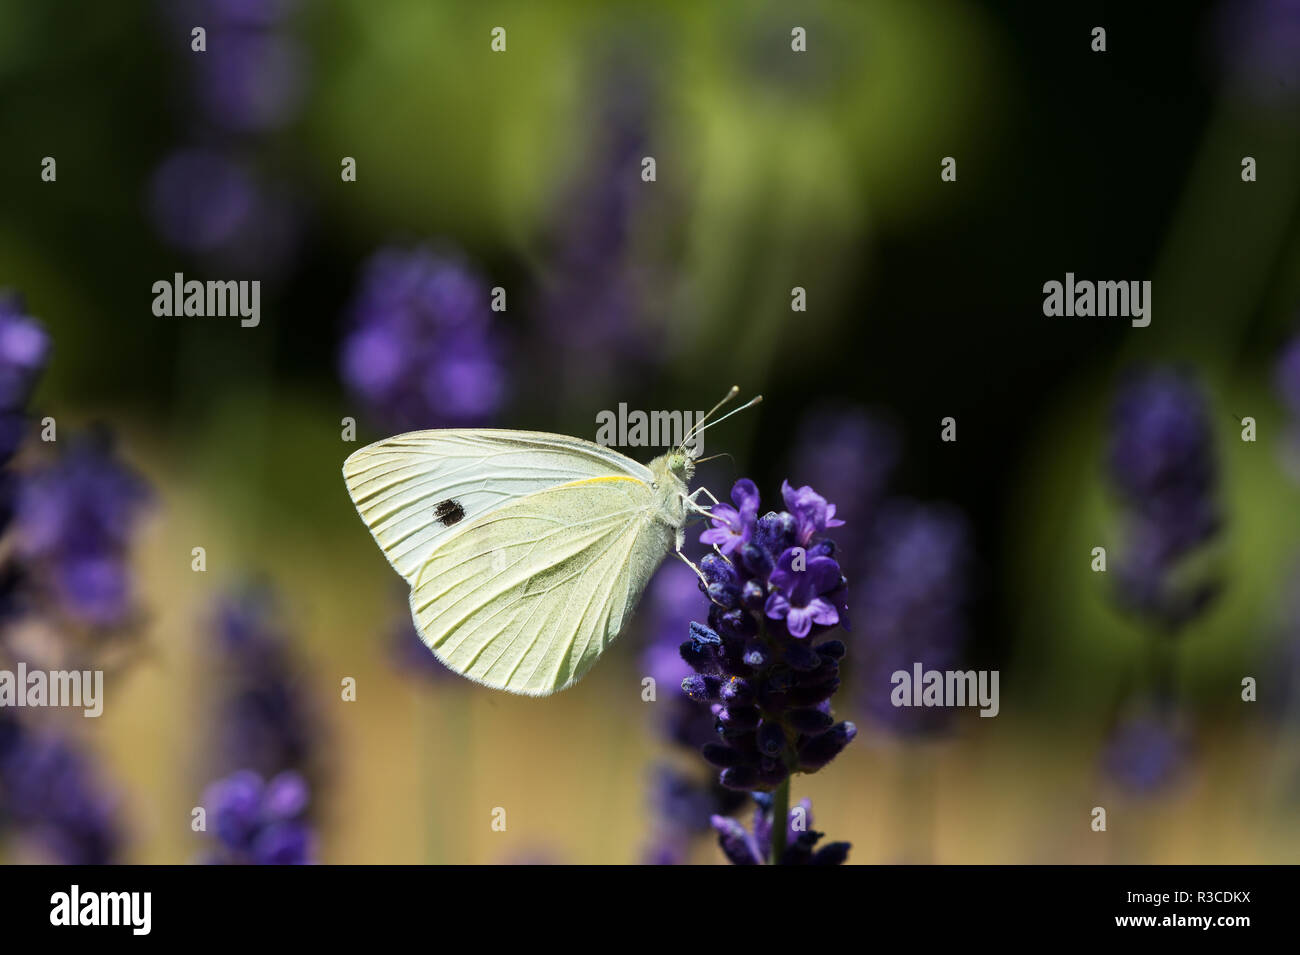 Small White Butterfly, Nottinghamshire - Stock Image